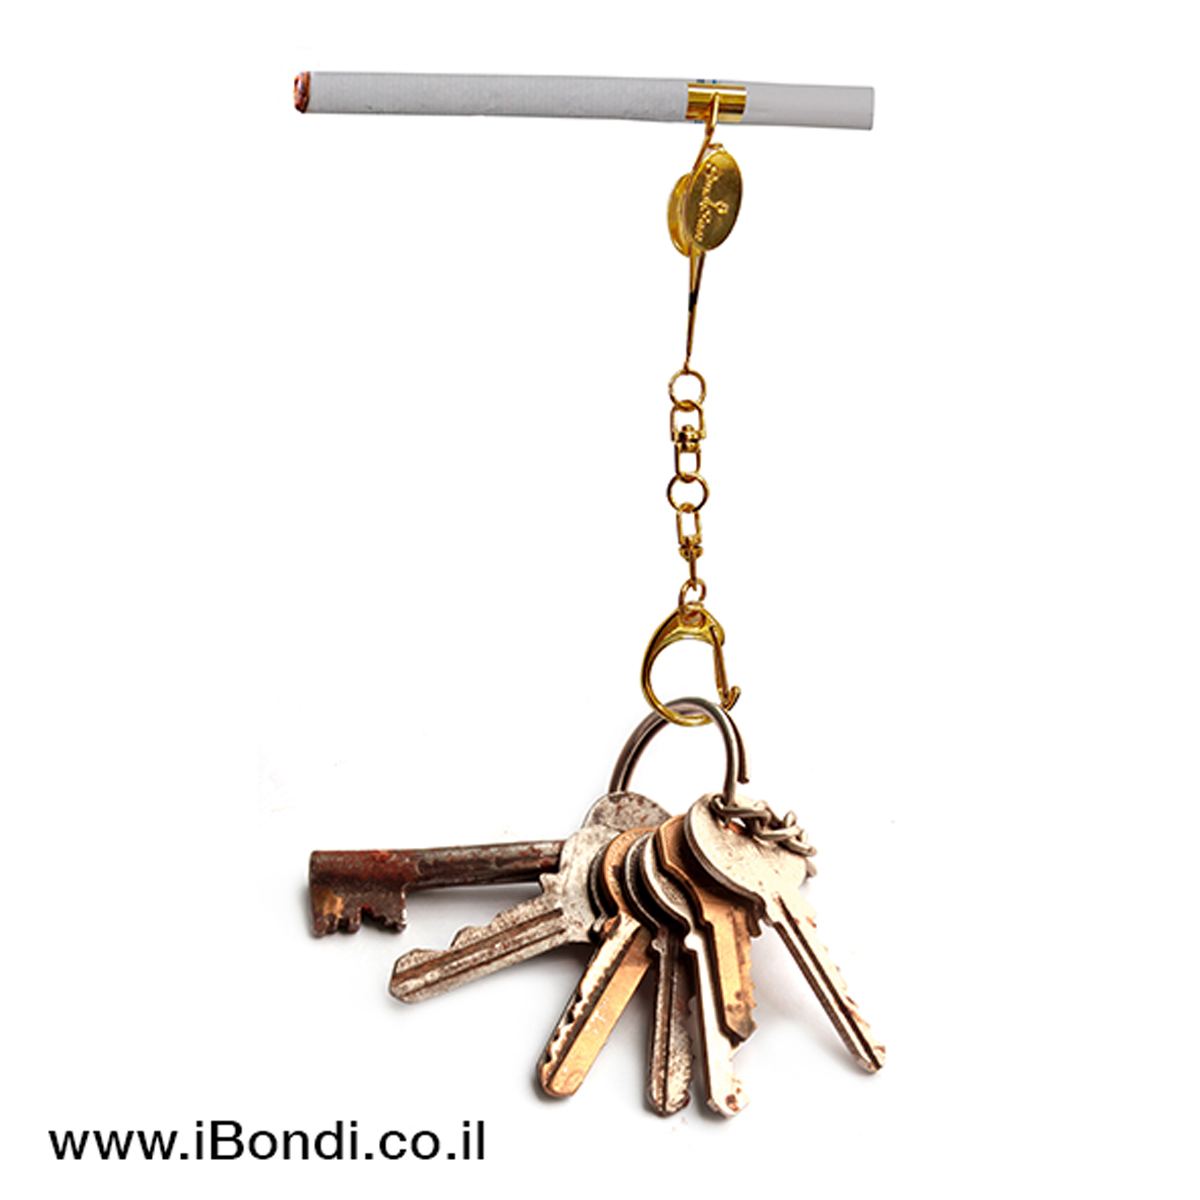 Cigarette&Key holder